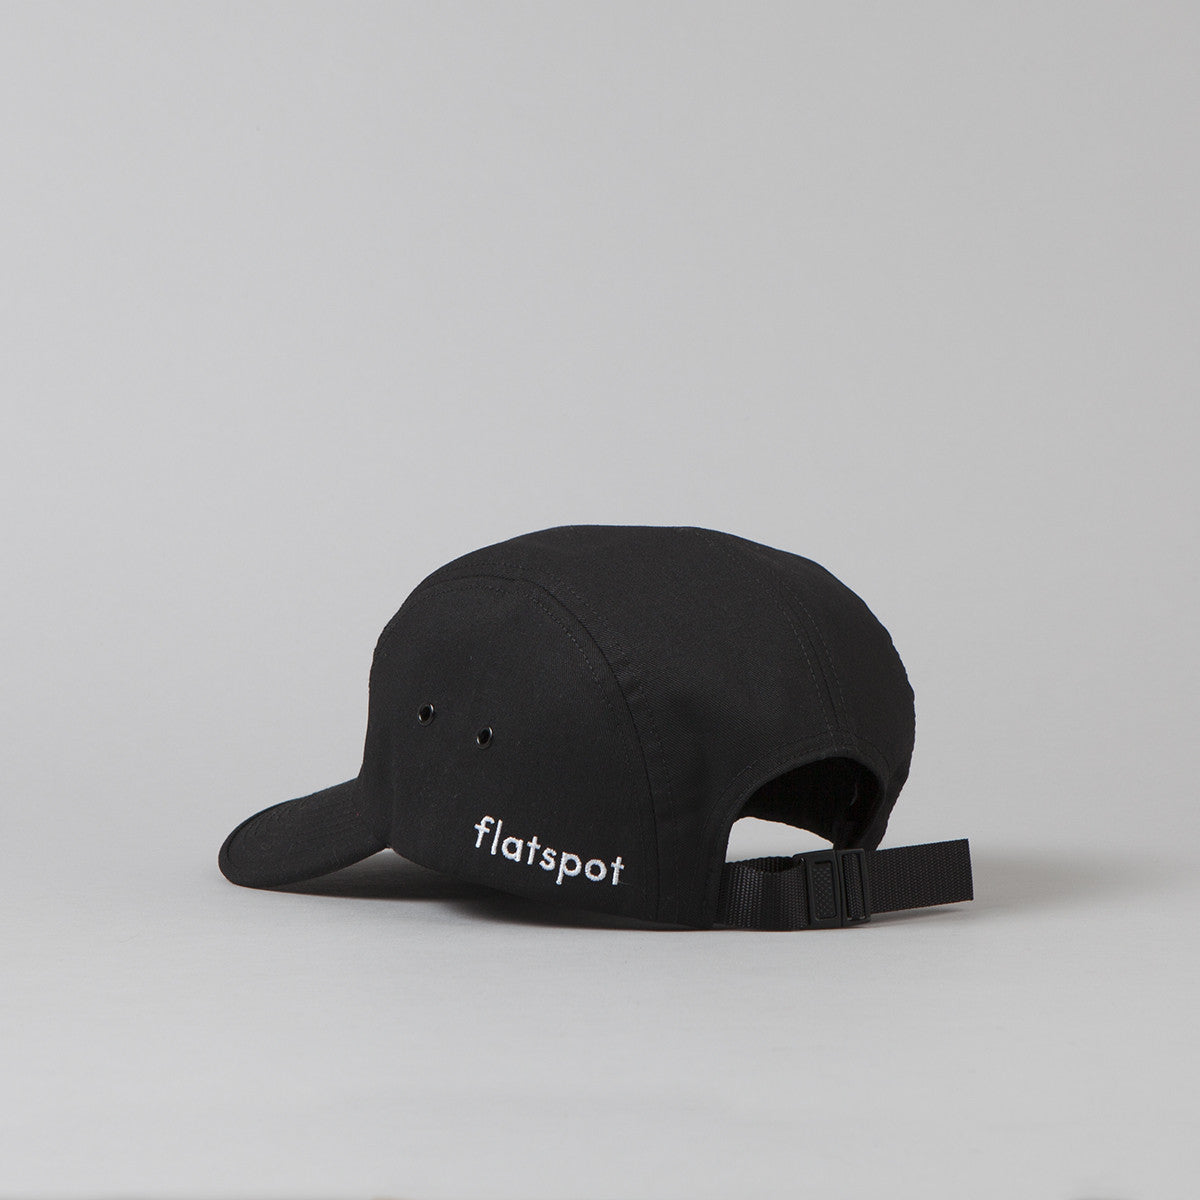 Flatspot Twill Jockey Cap - Black